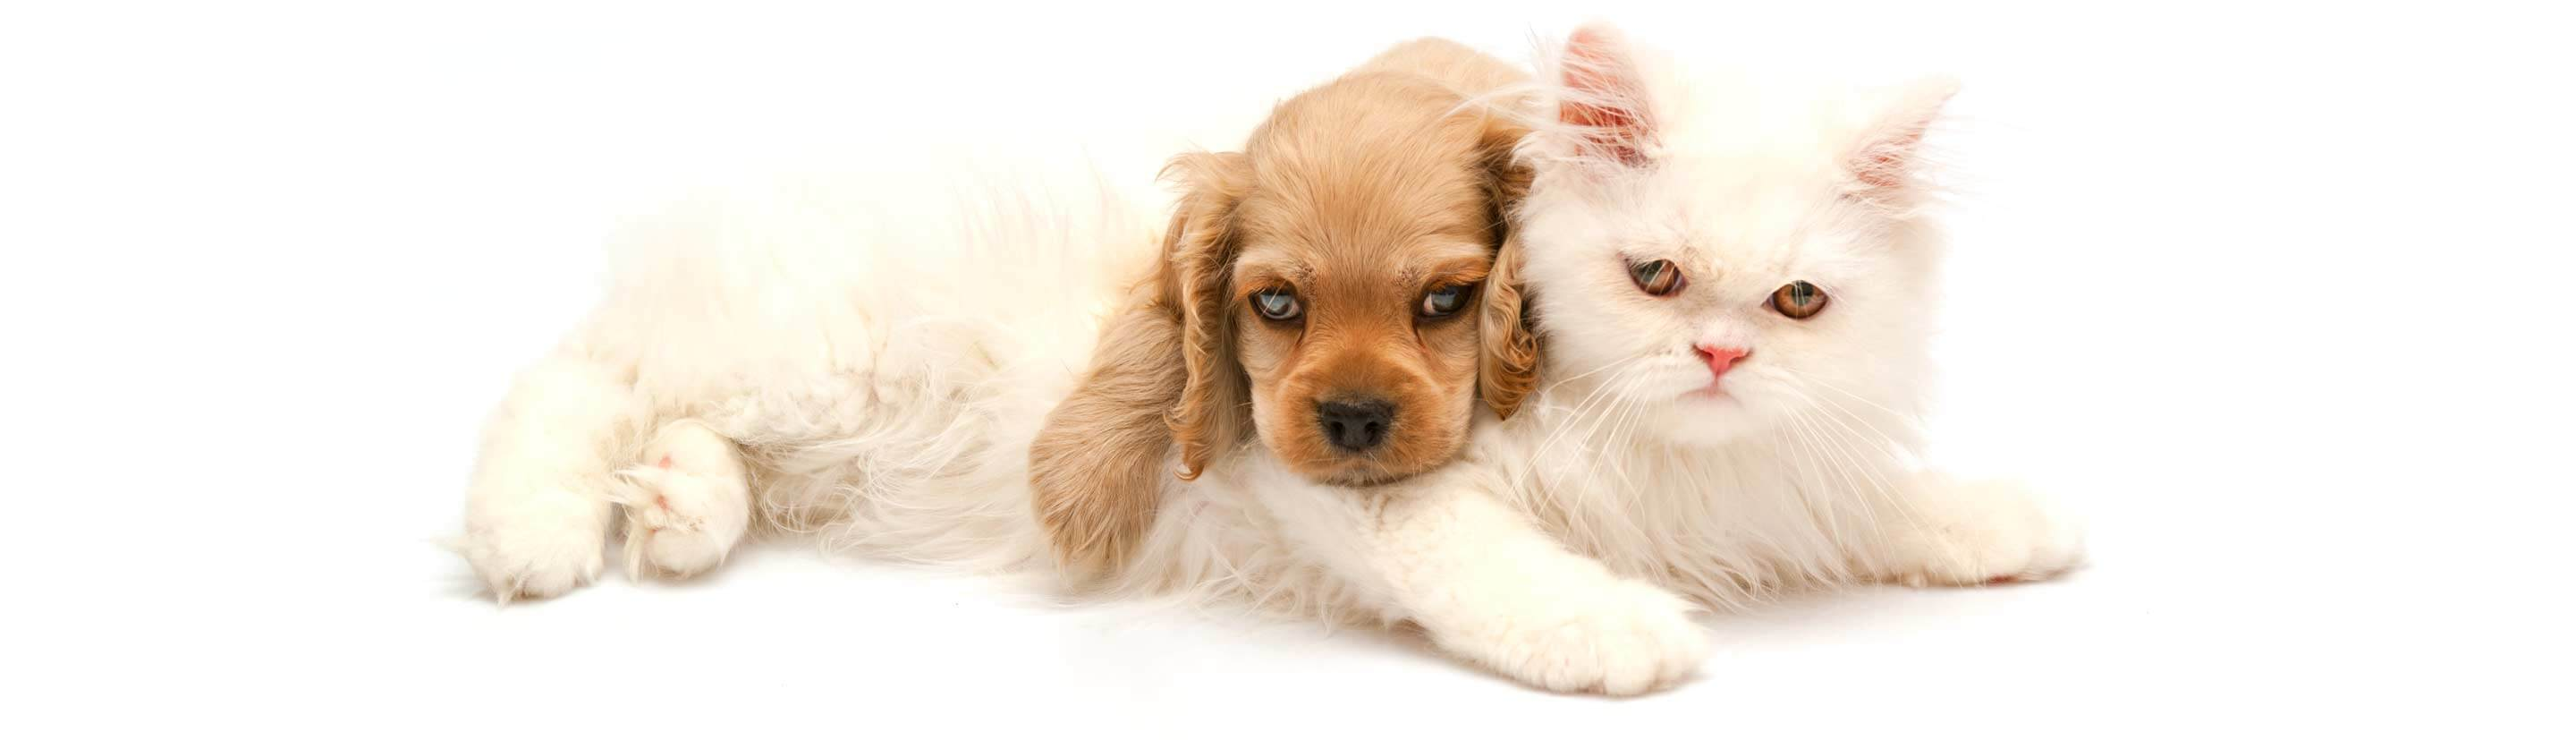 Brown Dog and White Cat